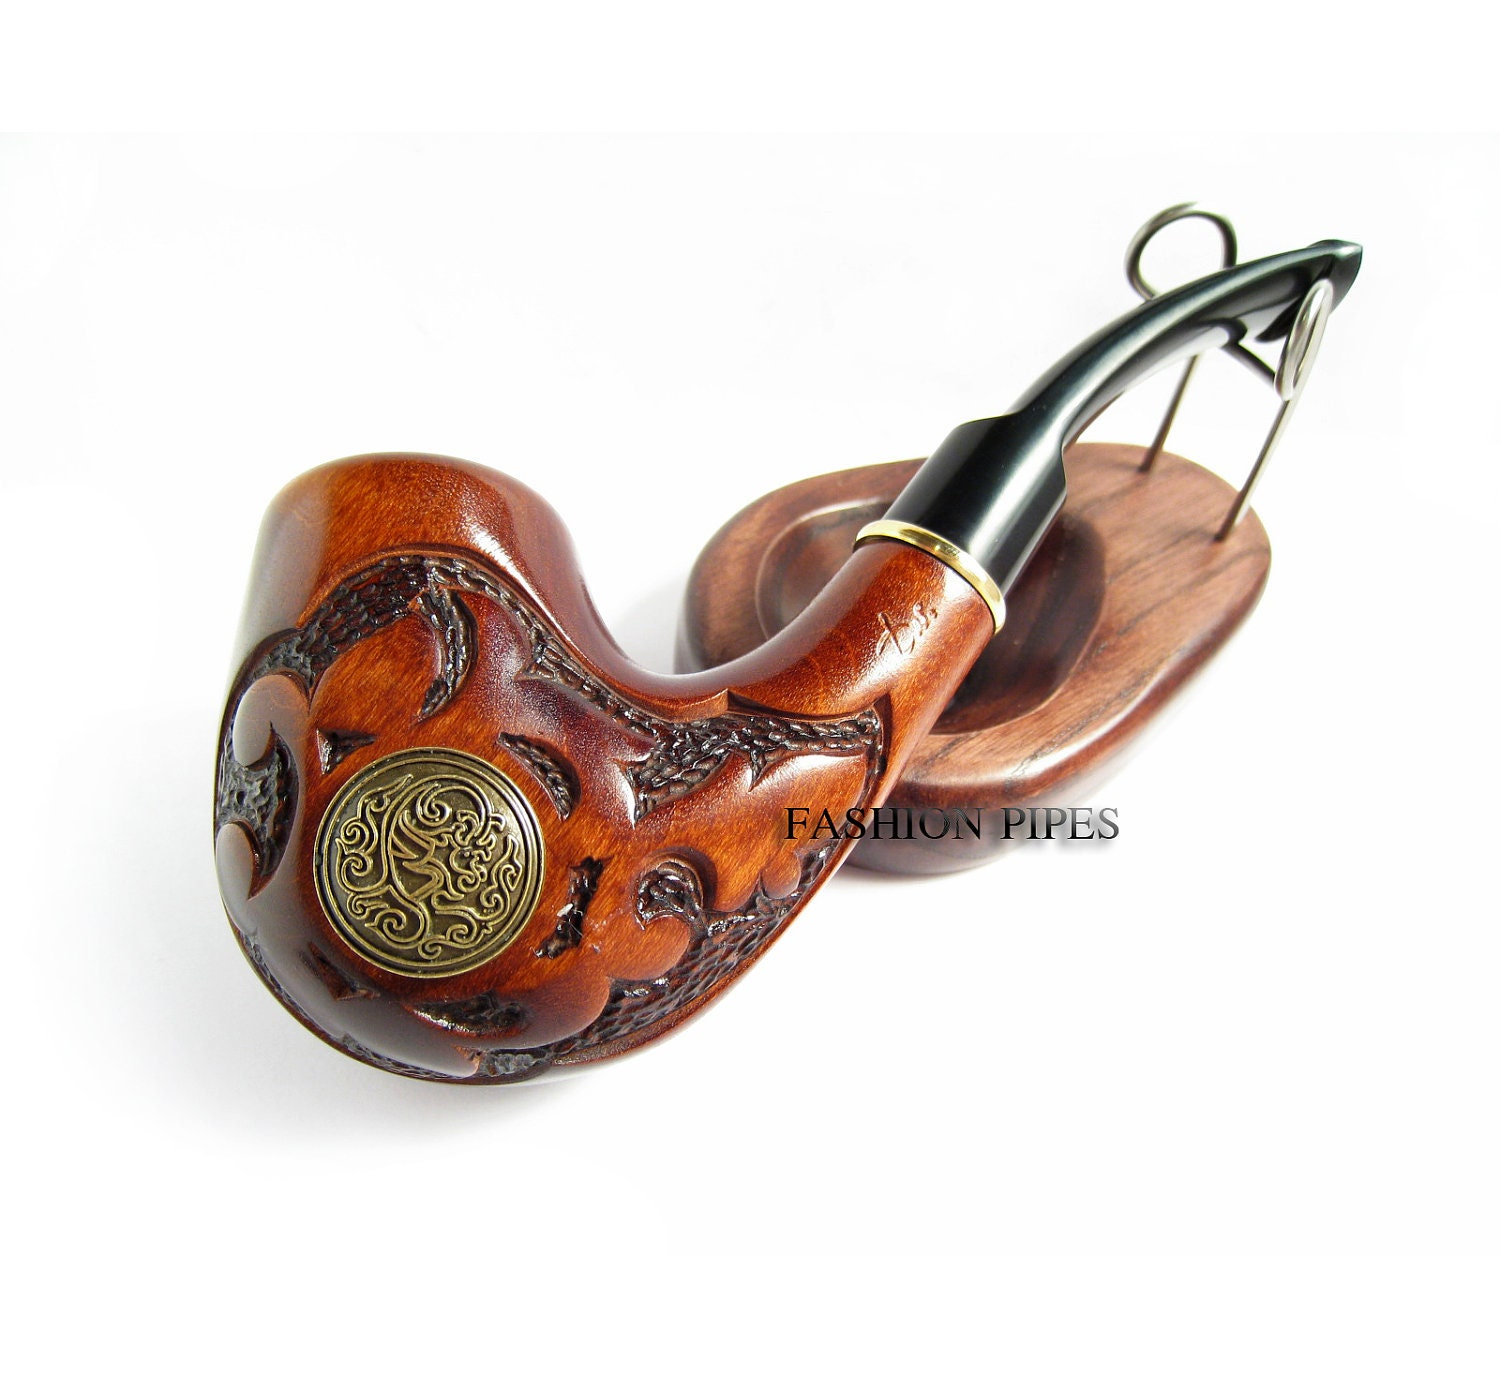 New Style NORDIC Wood pipe Tobacco PipePipes Smoking  : ilfullxfull37393162566dt from ayujewelryshop.wordpress.com size 1500 x 1390 jpeg 241kB